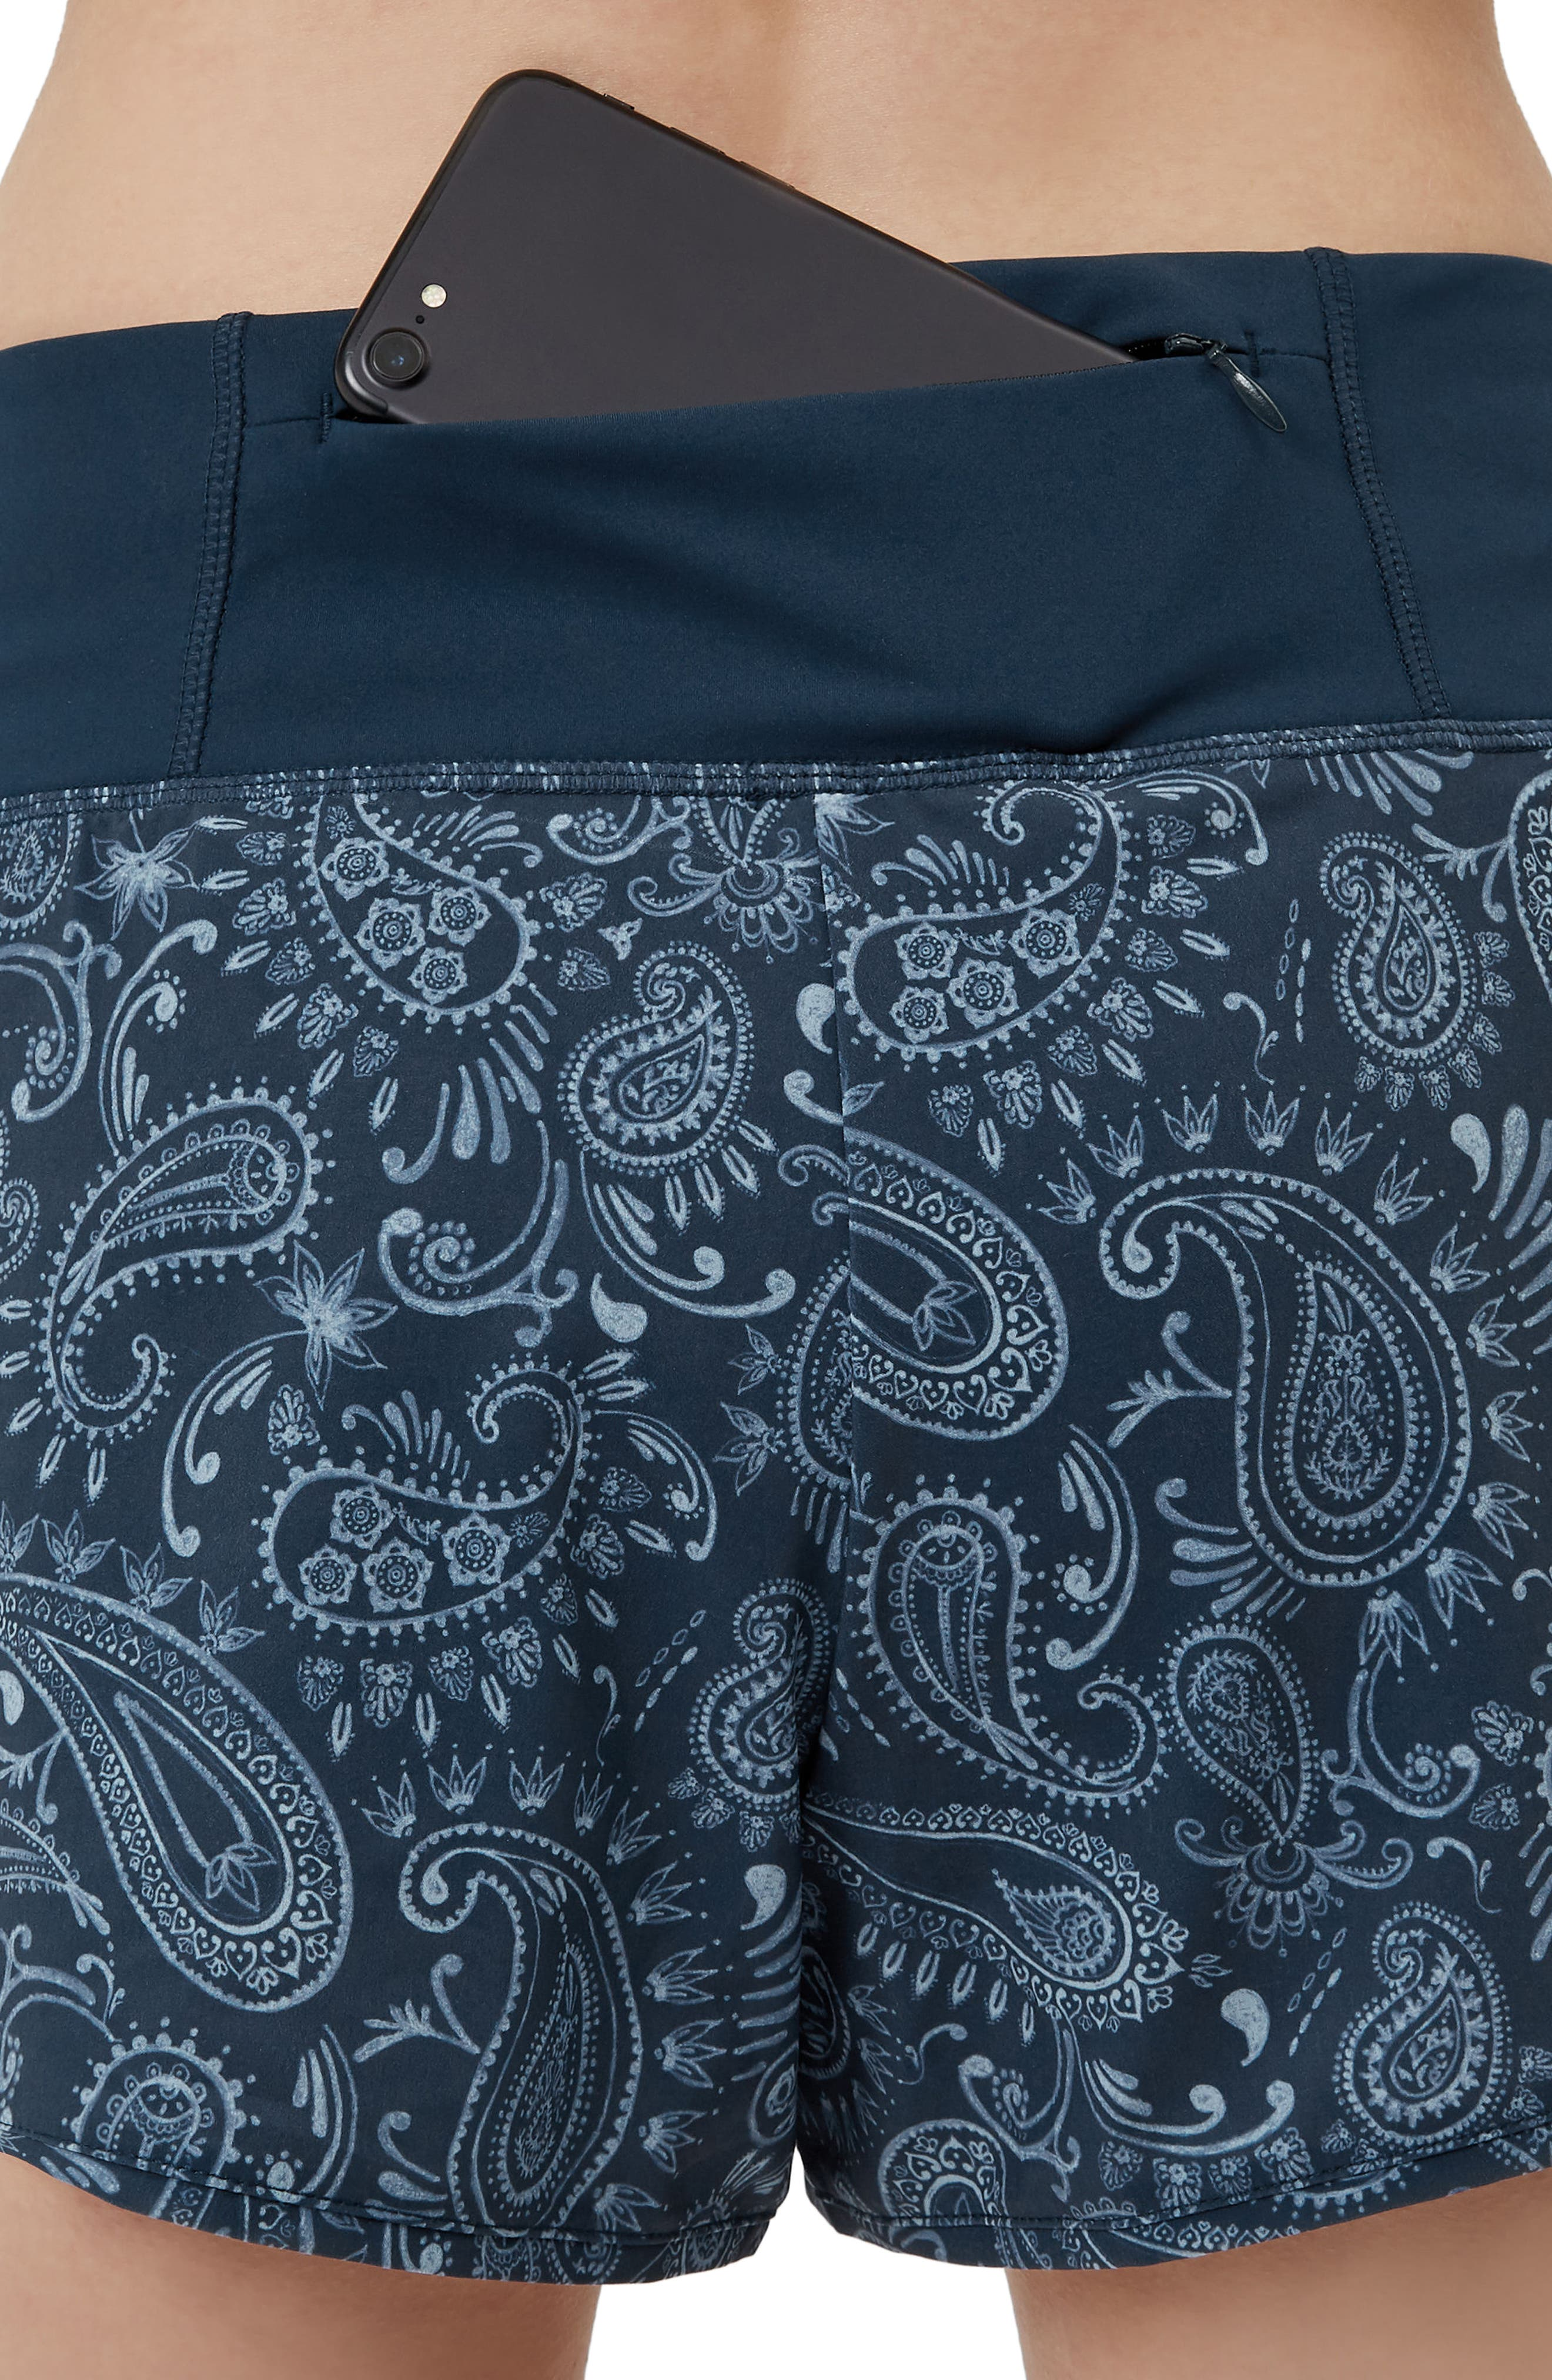 Time Trail Running Shorts,                             Alternate thumbnail 6, color,                             Painted Paisley Print